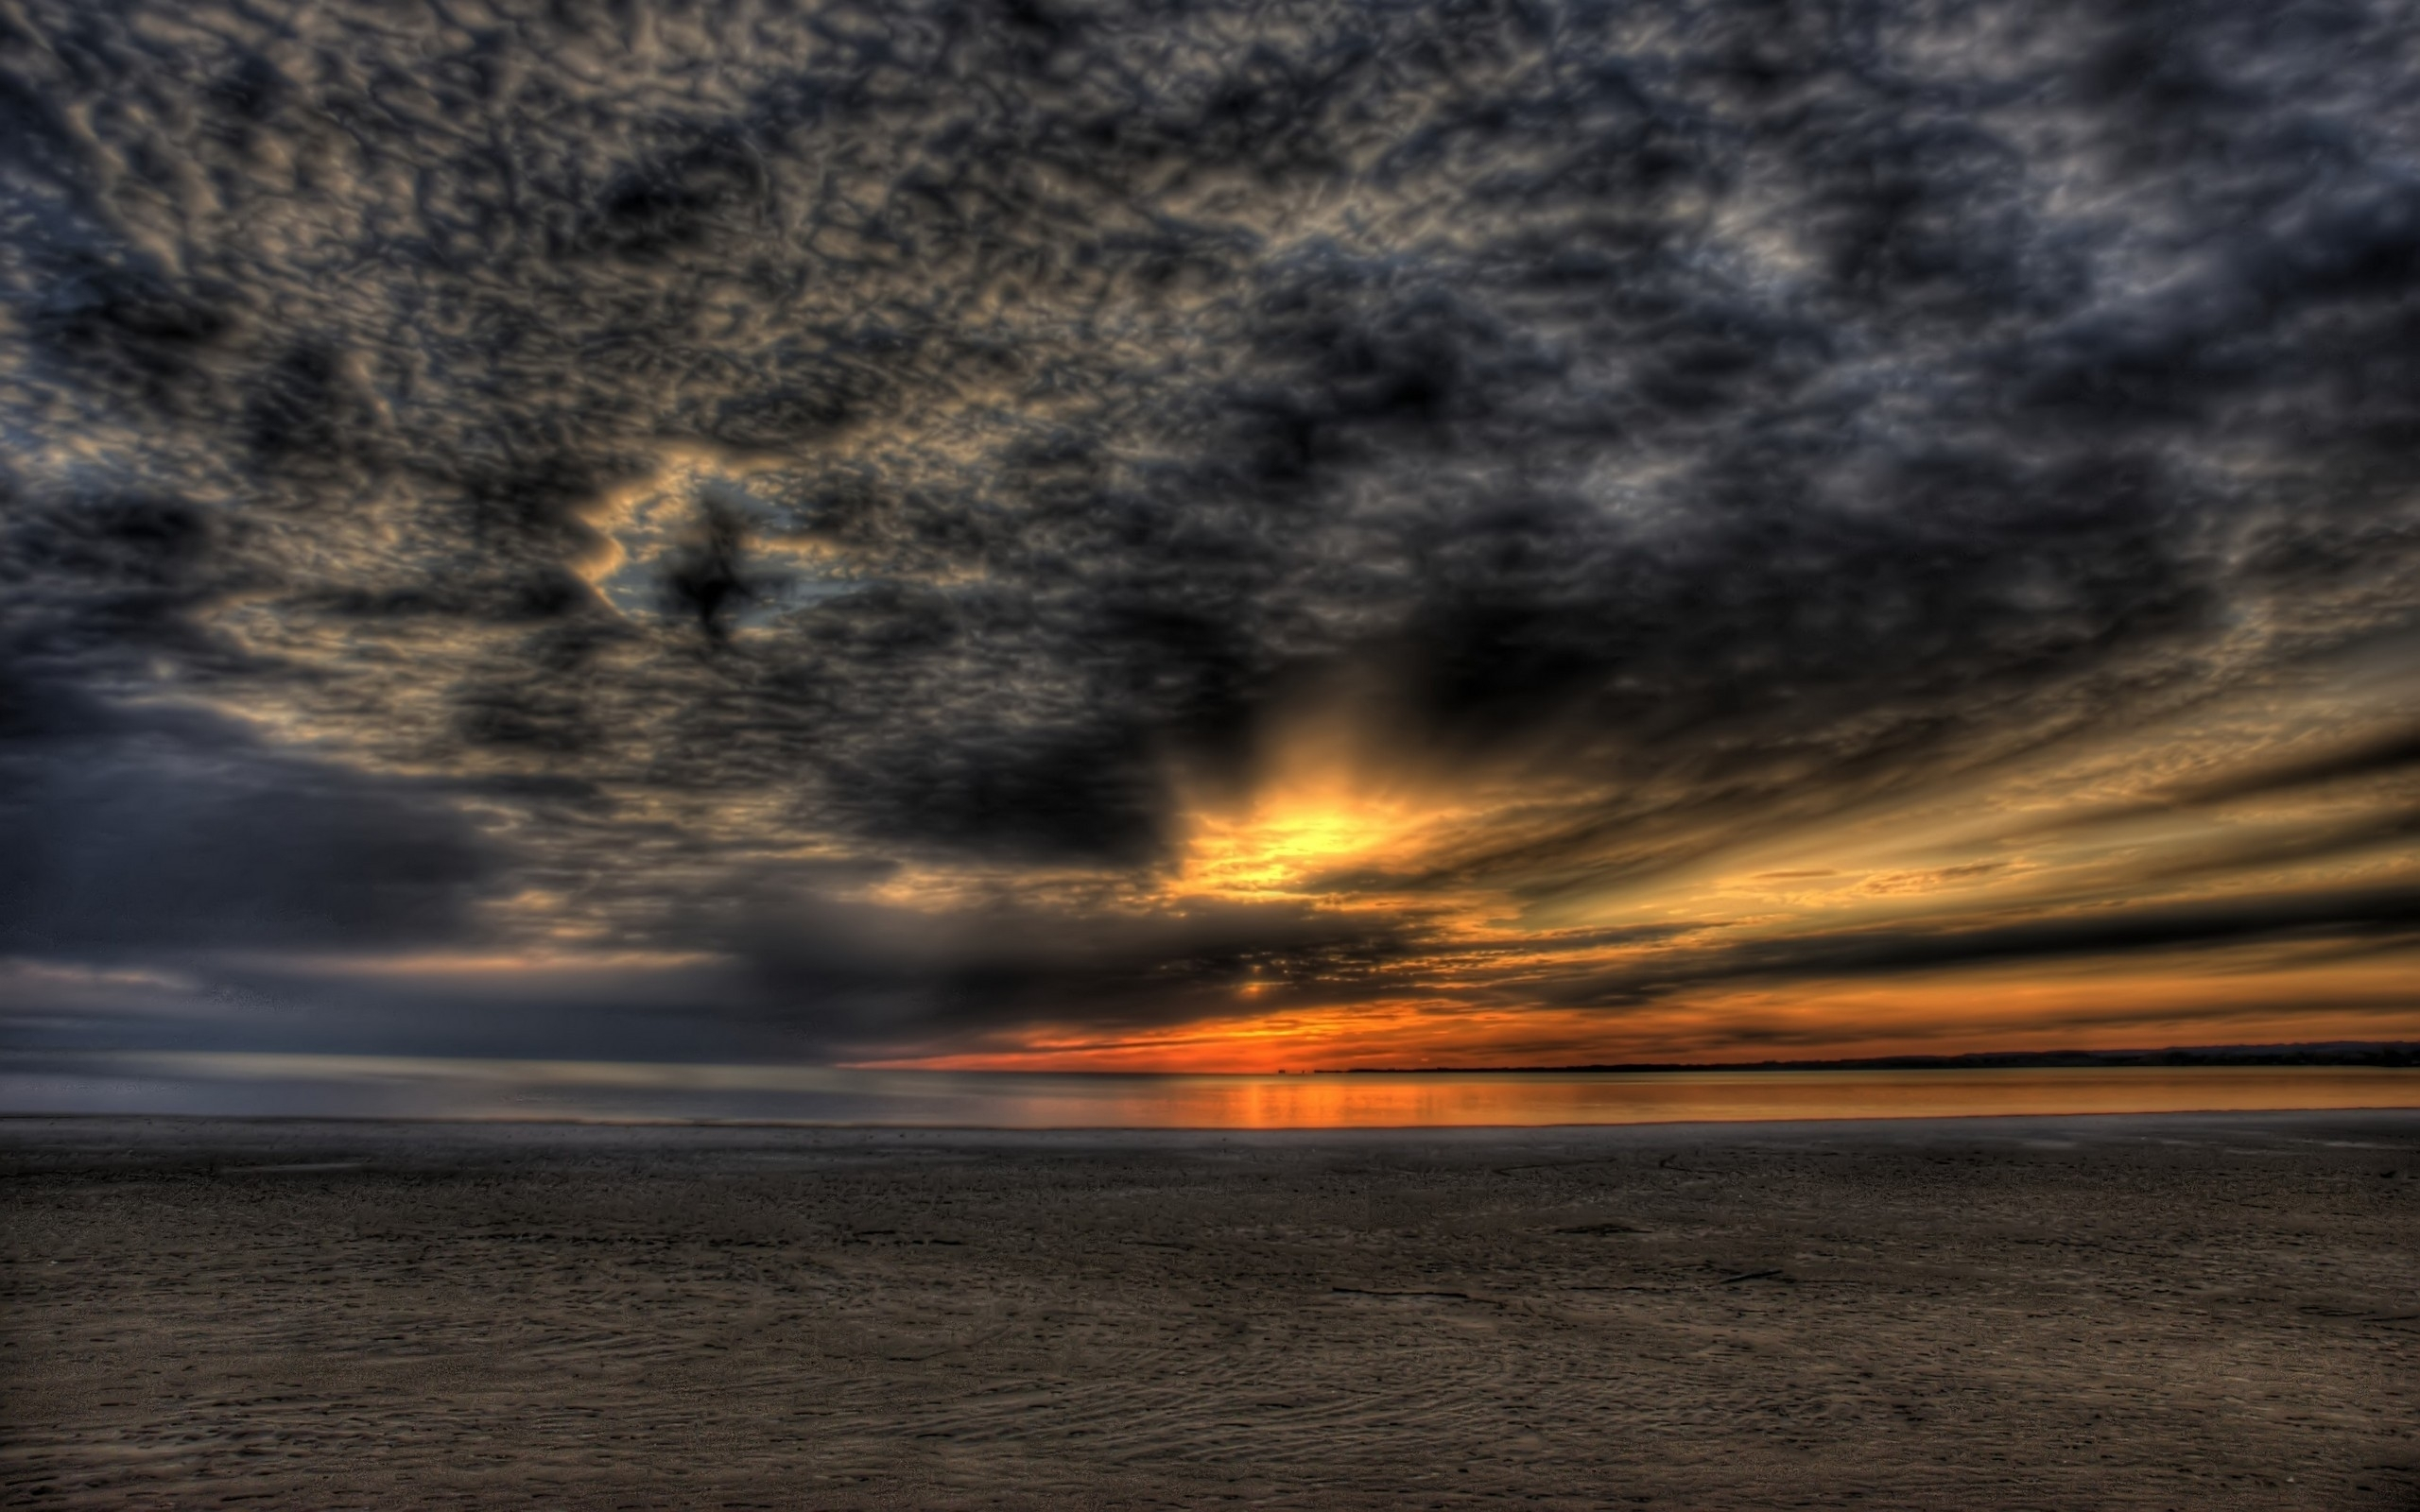 Landscapes hdr photography 7 1462